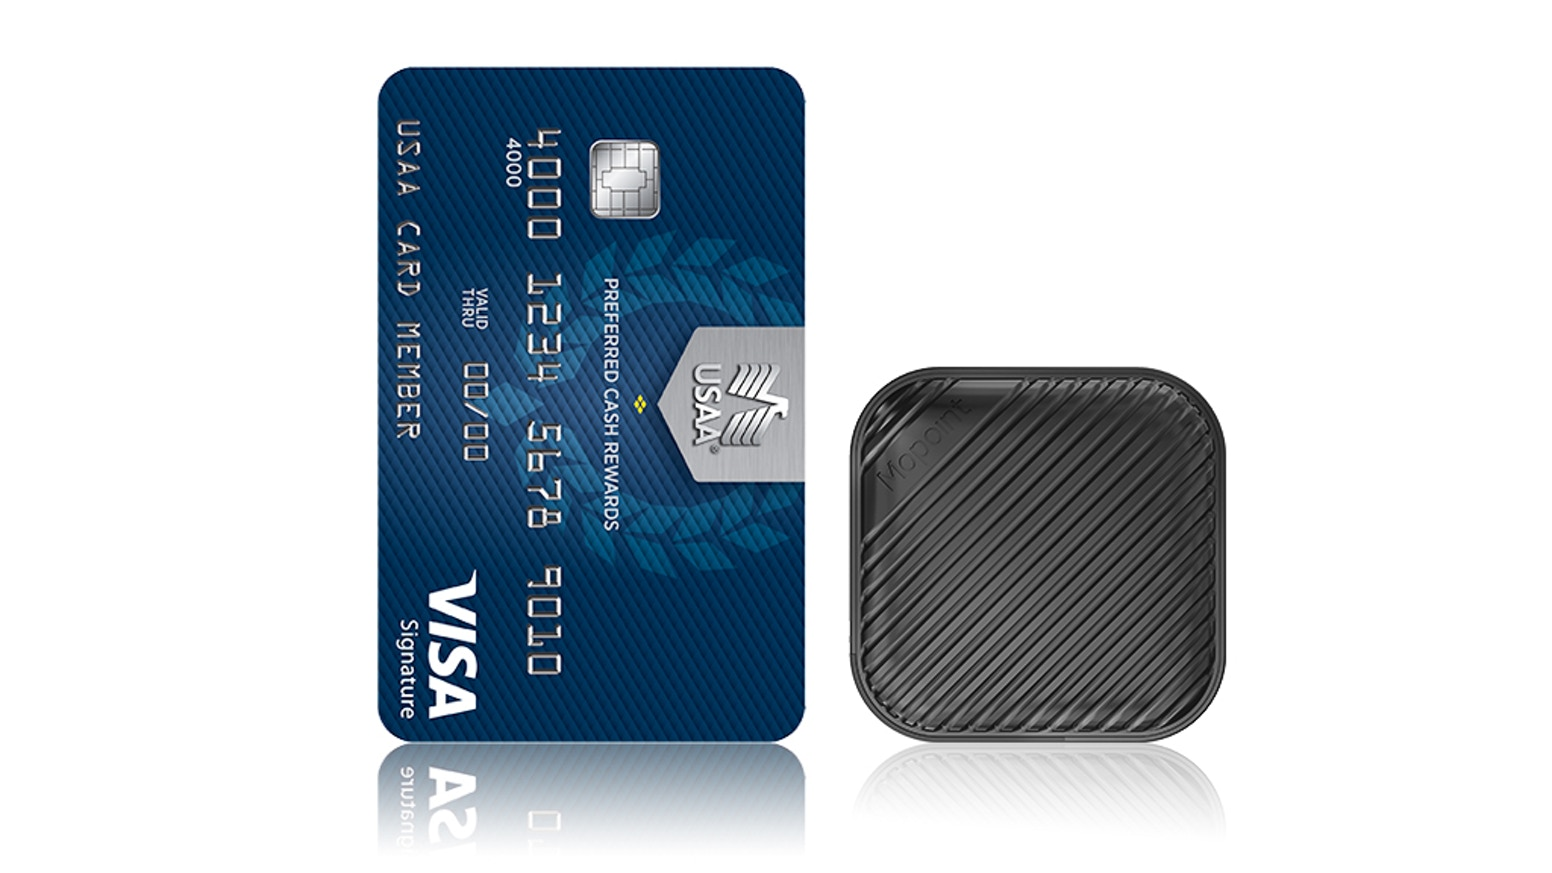 1/2 credit card size 65W charger, fast charges 3 devices: laptop, tablet, smartphone (2 x USB-C, 1 x USB-A) at the same time